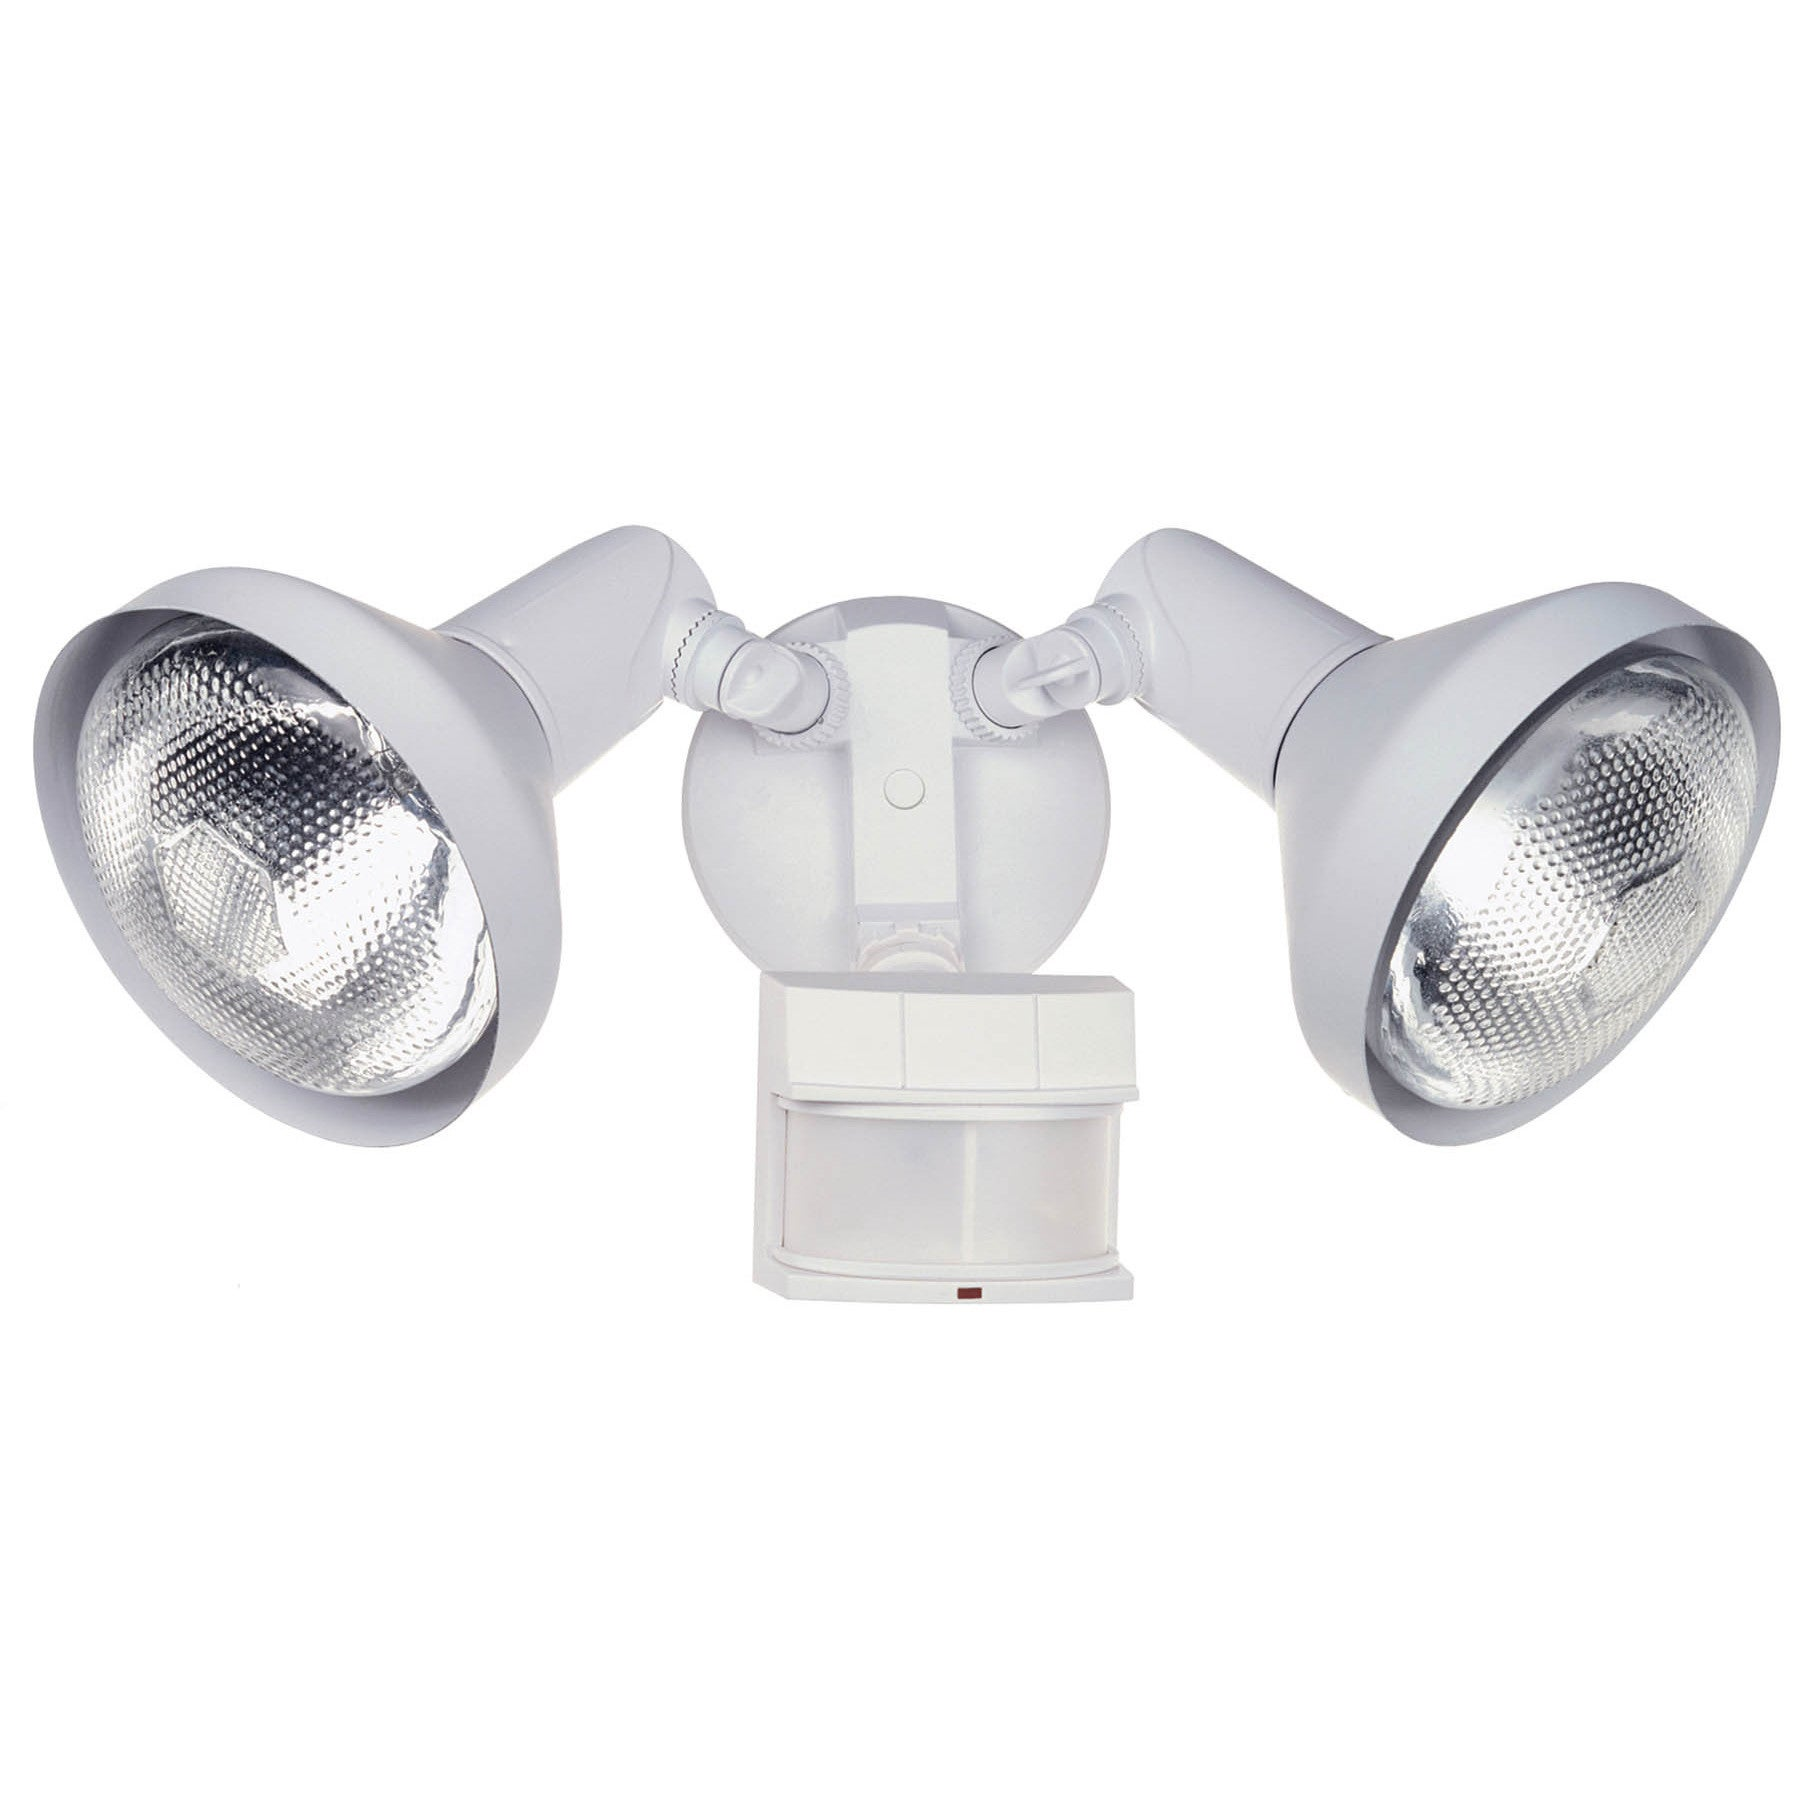 HeathCo Heath Zenith White Metal Security Spotlight Motio...